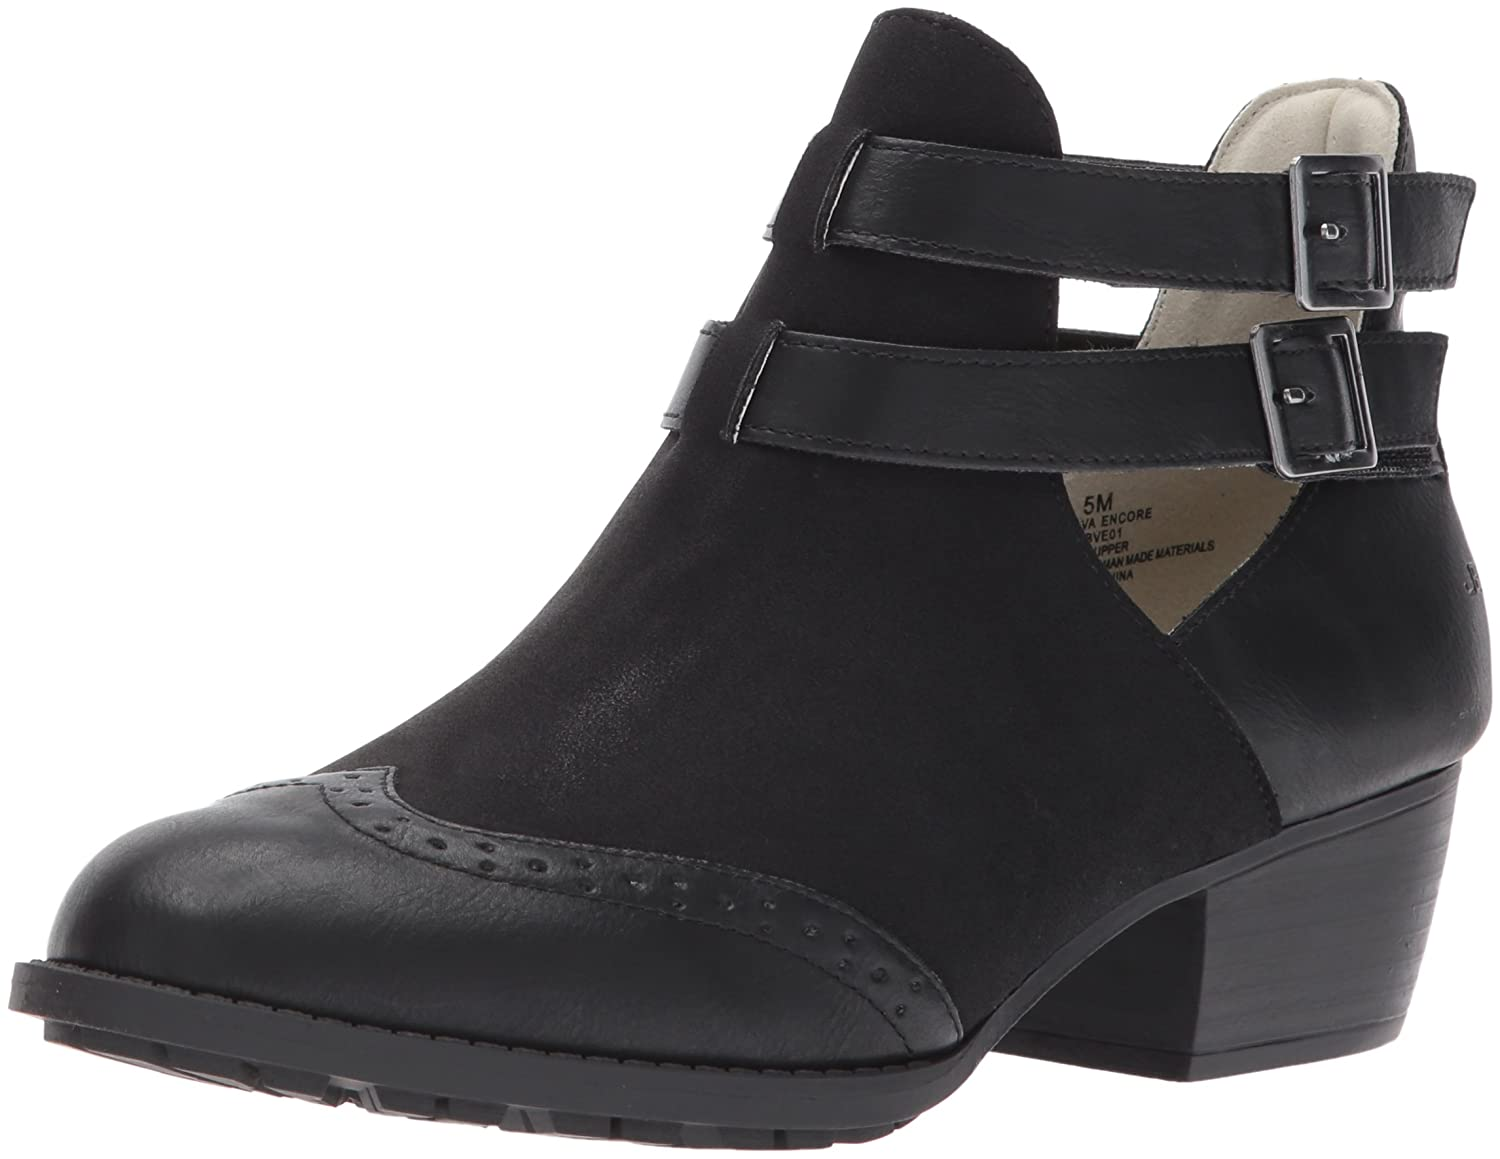 JBU by Jambu Women's Brava Encore Ankle Bootie B06XF1VQCF 9 B(M) US|Black